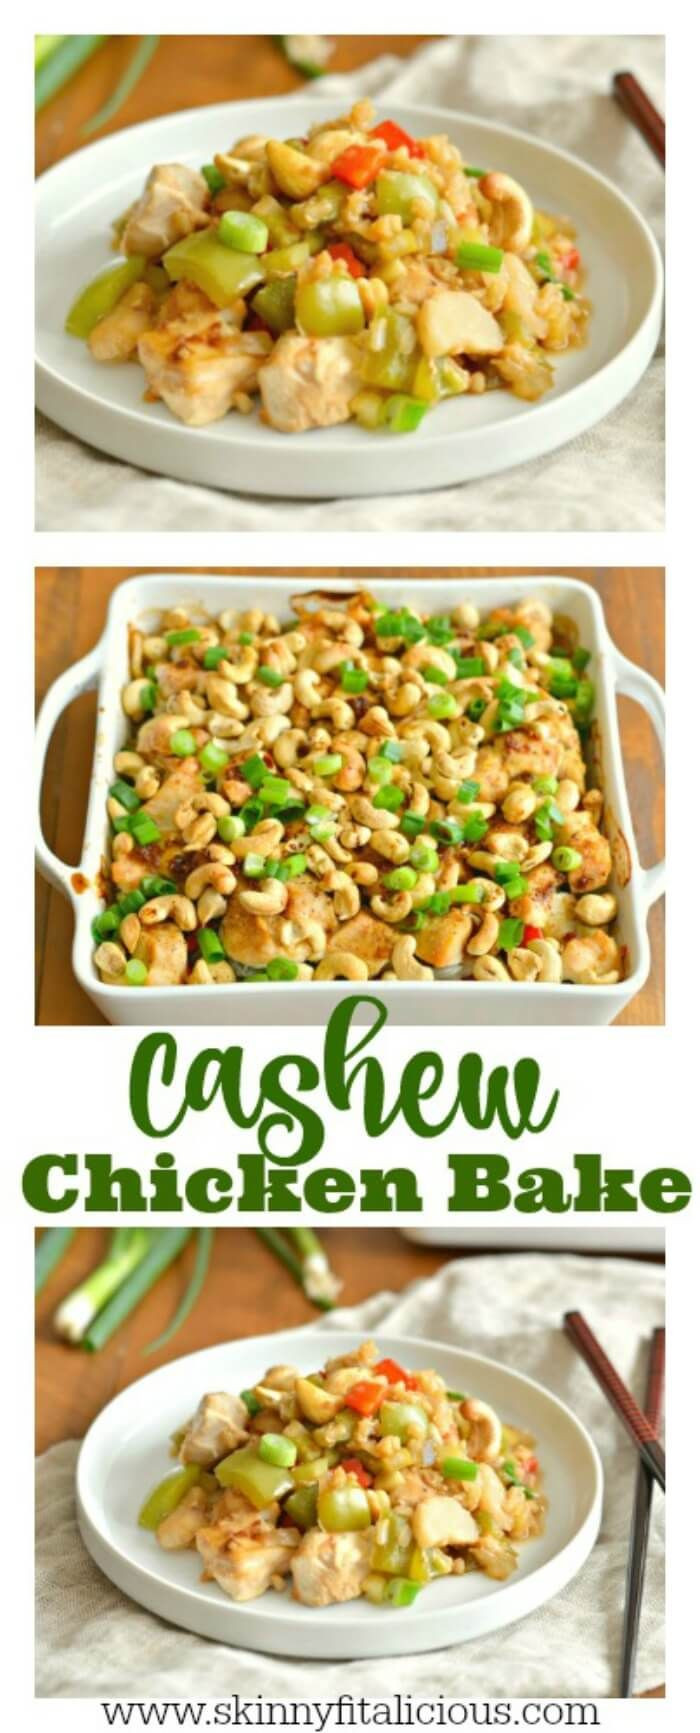 Healthy Low Cal Dinners  100 Low Calorie Recipes on Pinterest